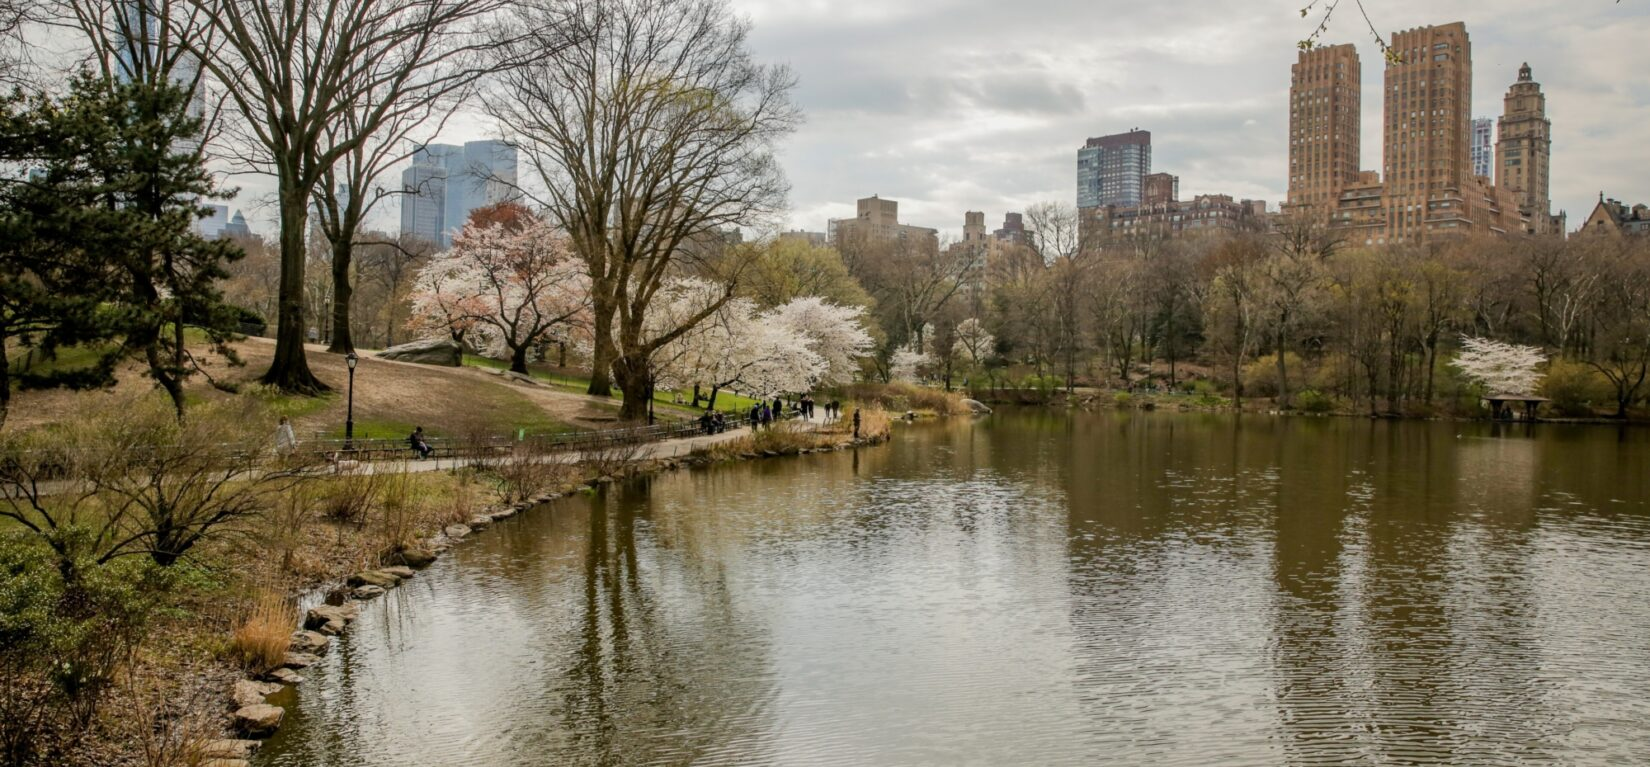 Cherry blossoms announce the arrival of spring, reflected in the Lake